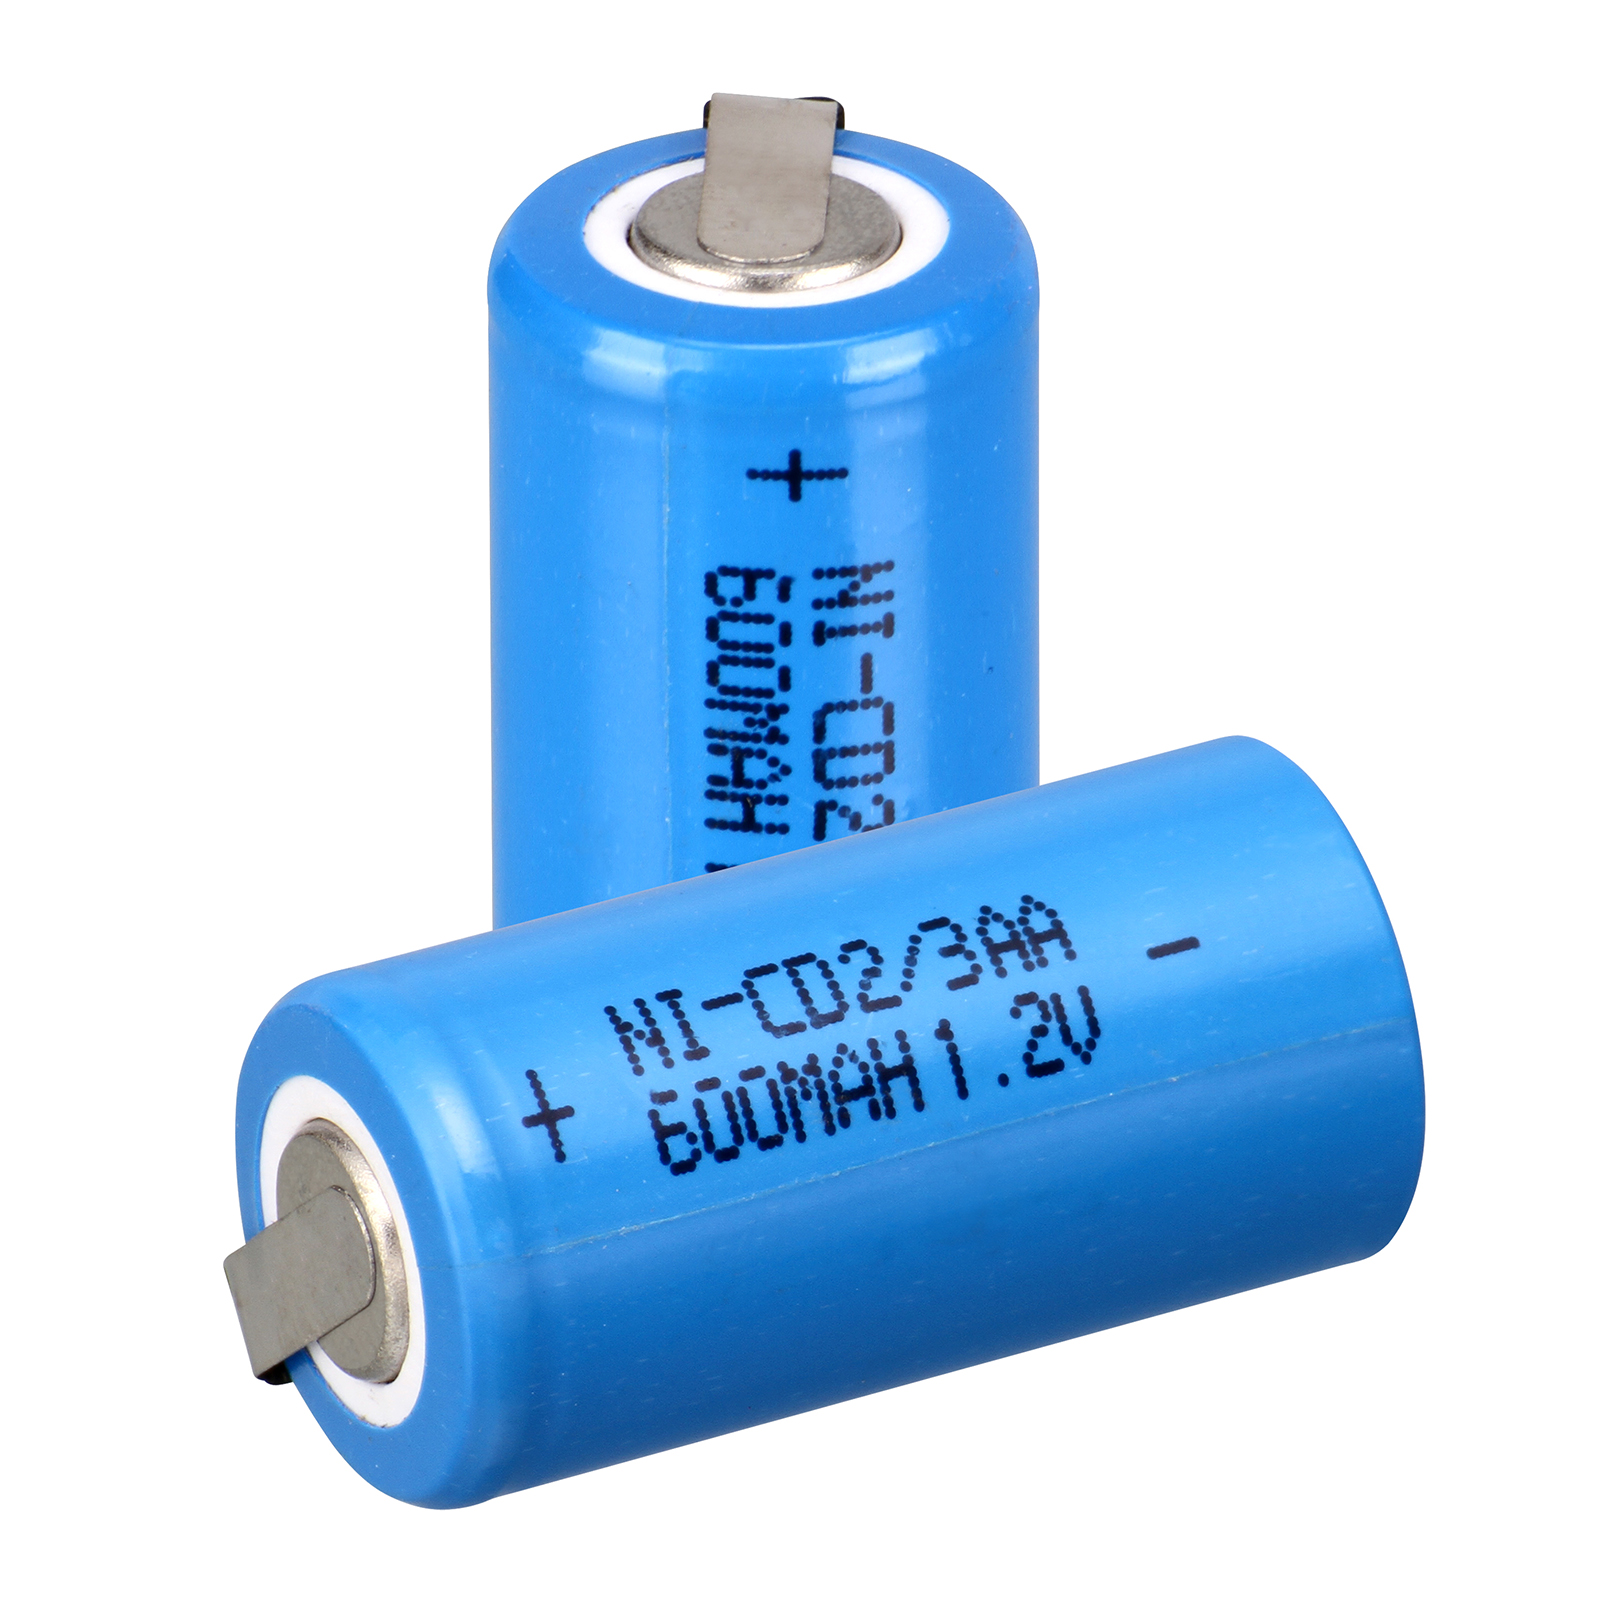 2pcs 2/3 AA nicd 1.2V Battery 600mAh <font><b>ni</b></font> <font><b>cd</b></font> <font><b>Ni</b></font>-<font><b>CD</b></font> Rechargeable Battery <font><b>1.2</b></font> <font><b>V</b></font> blue color image